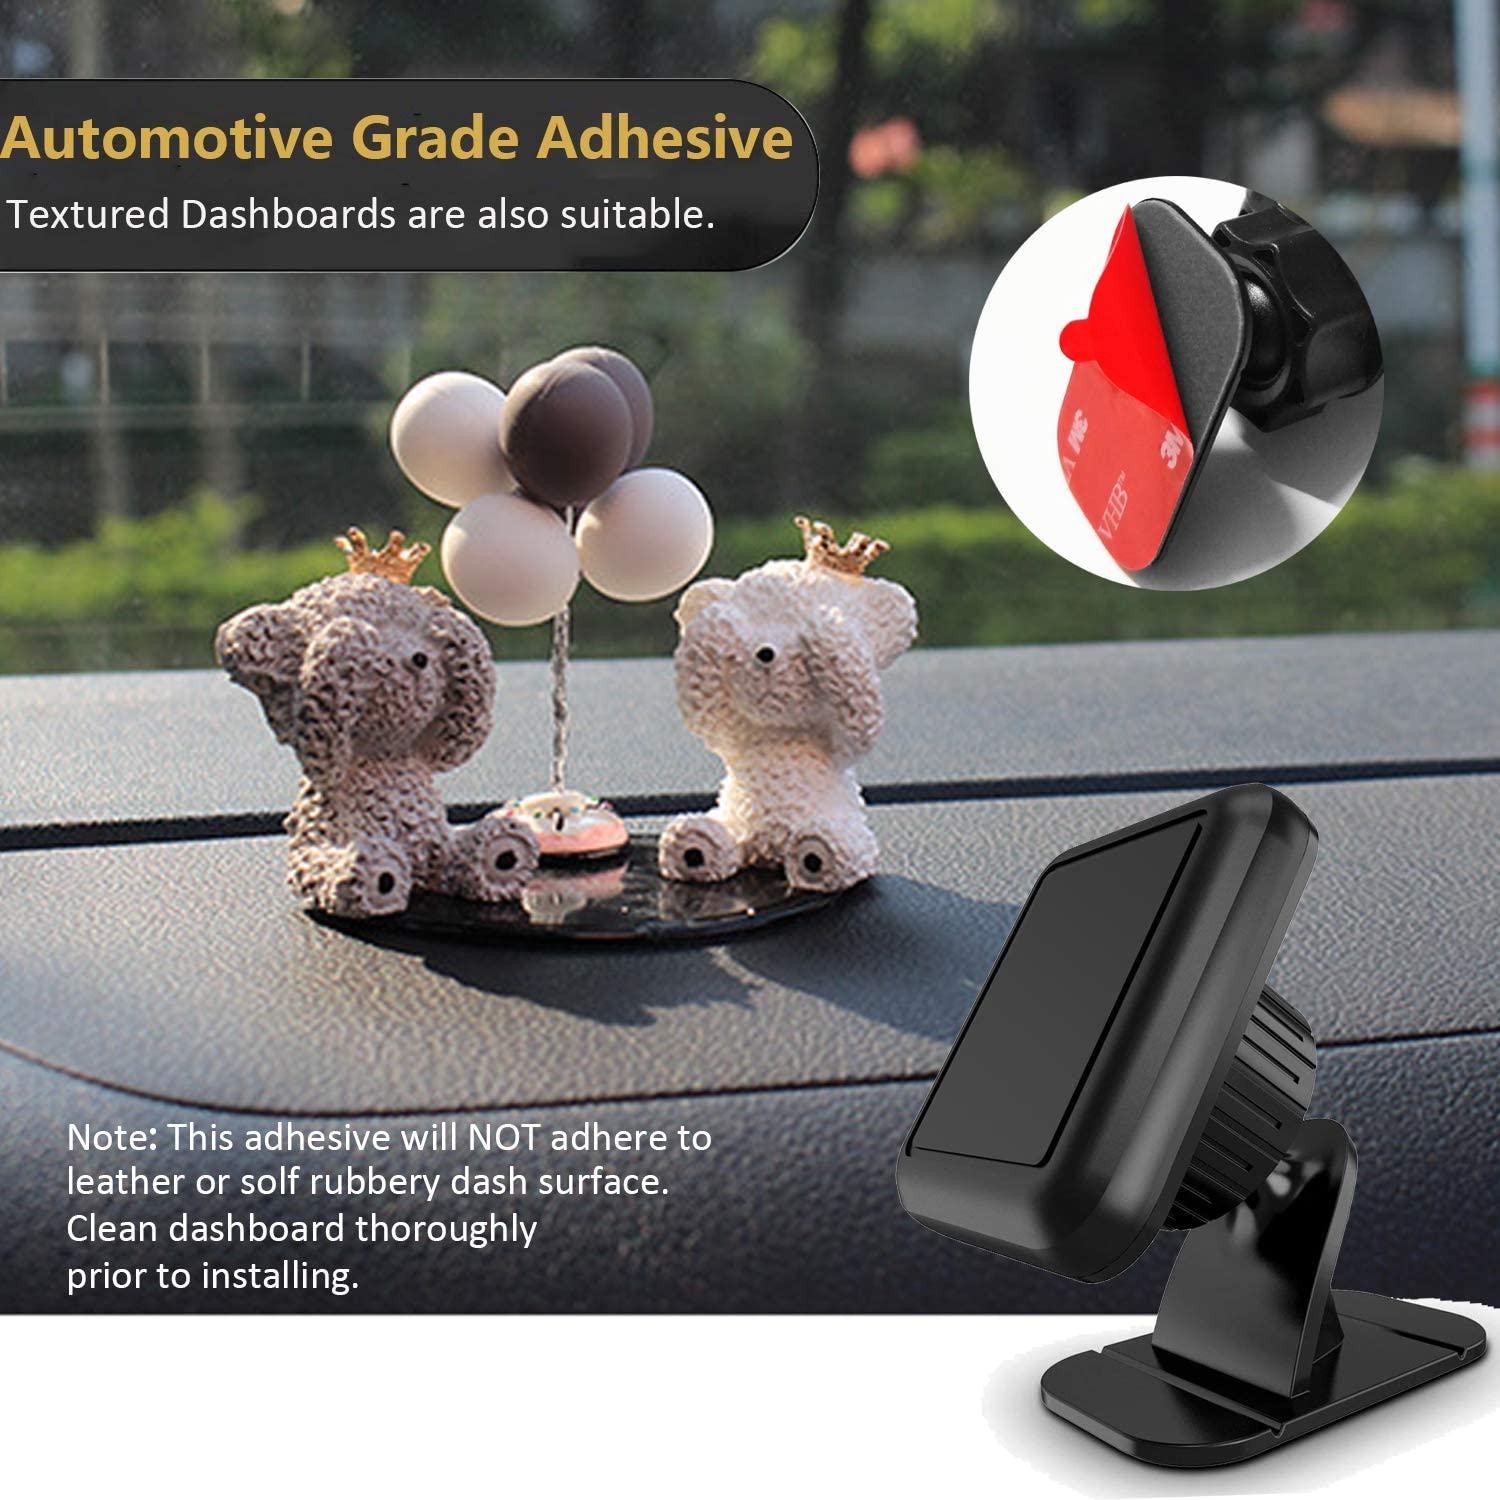 PKYAA 6 Pack Rectangle Heat Resistance Adhesive Replacement Pads for Dashboard Magnetic Phone Holder 6pcs Rectangle Adhesive Tapes /& 6pcs Alcohol Prep Pads Dashboard Mount Sticky Adhesive